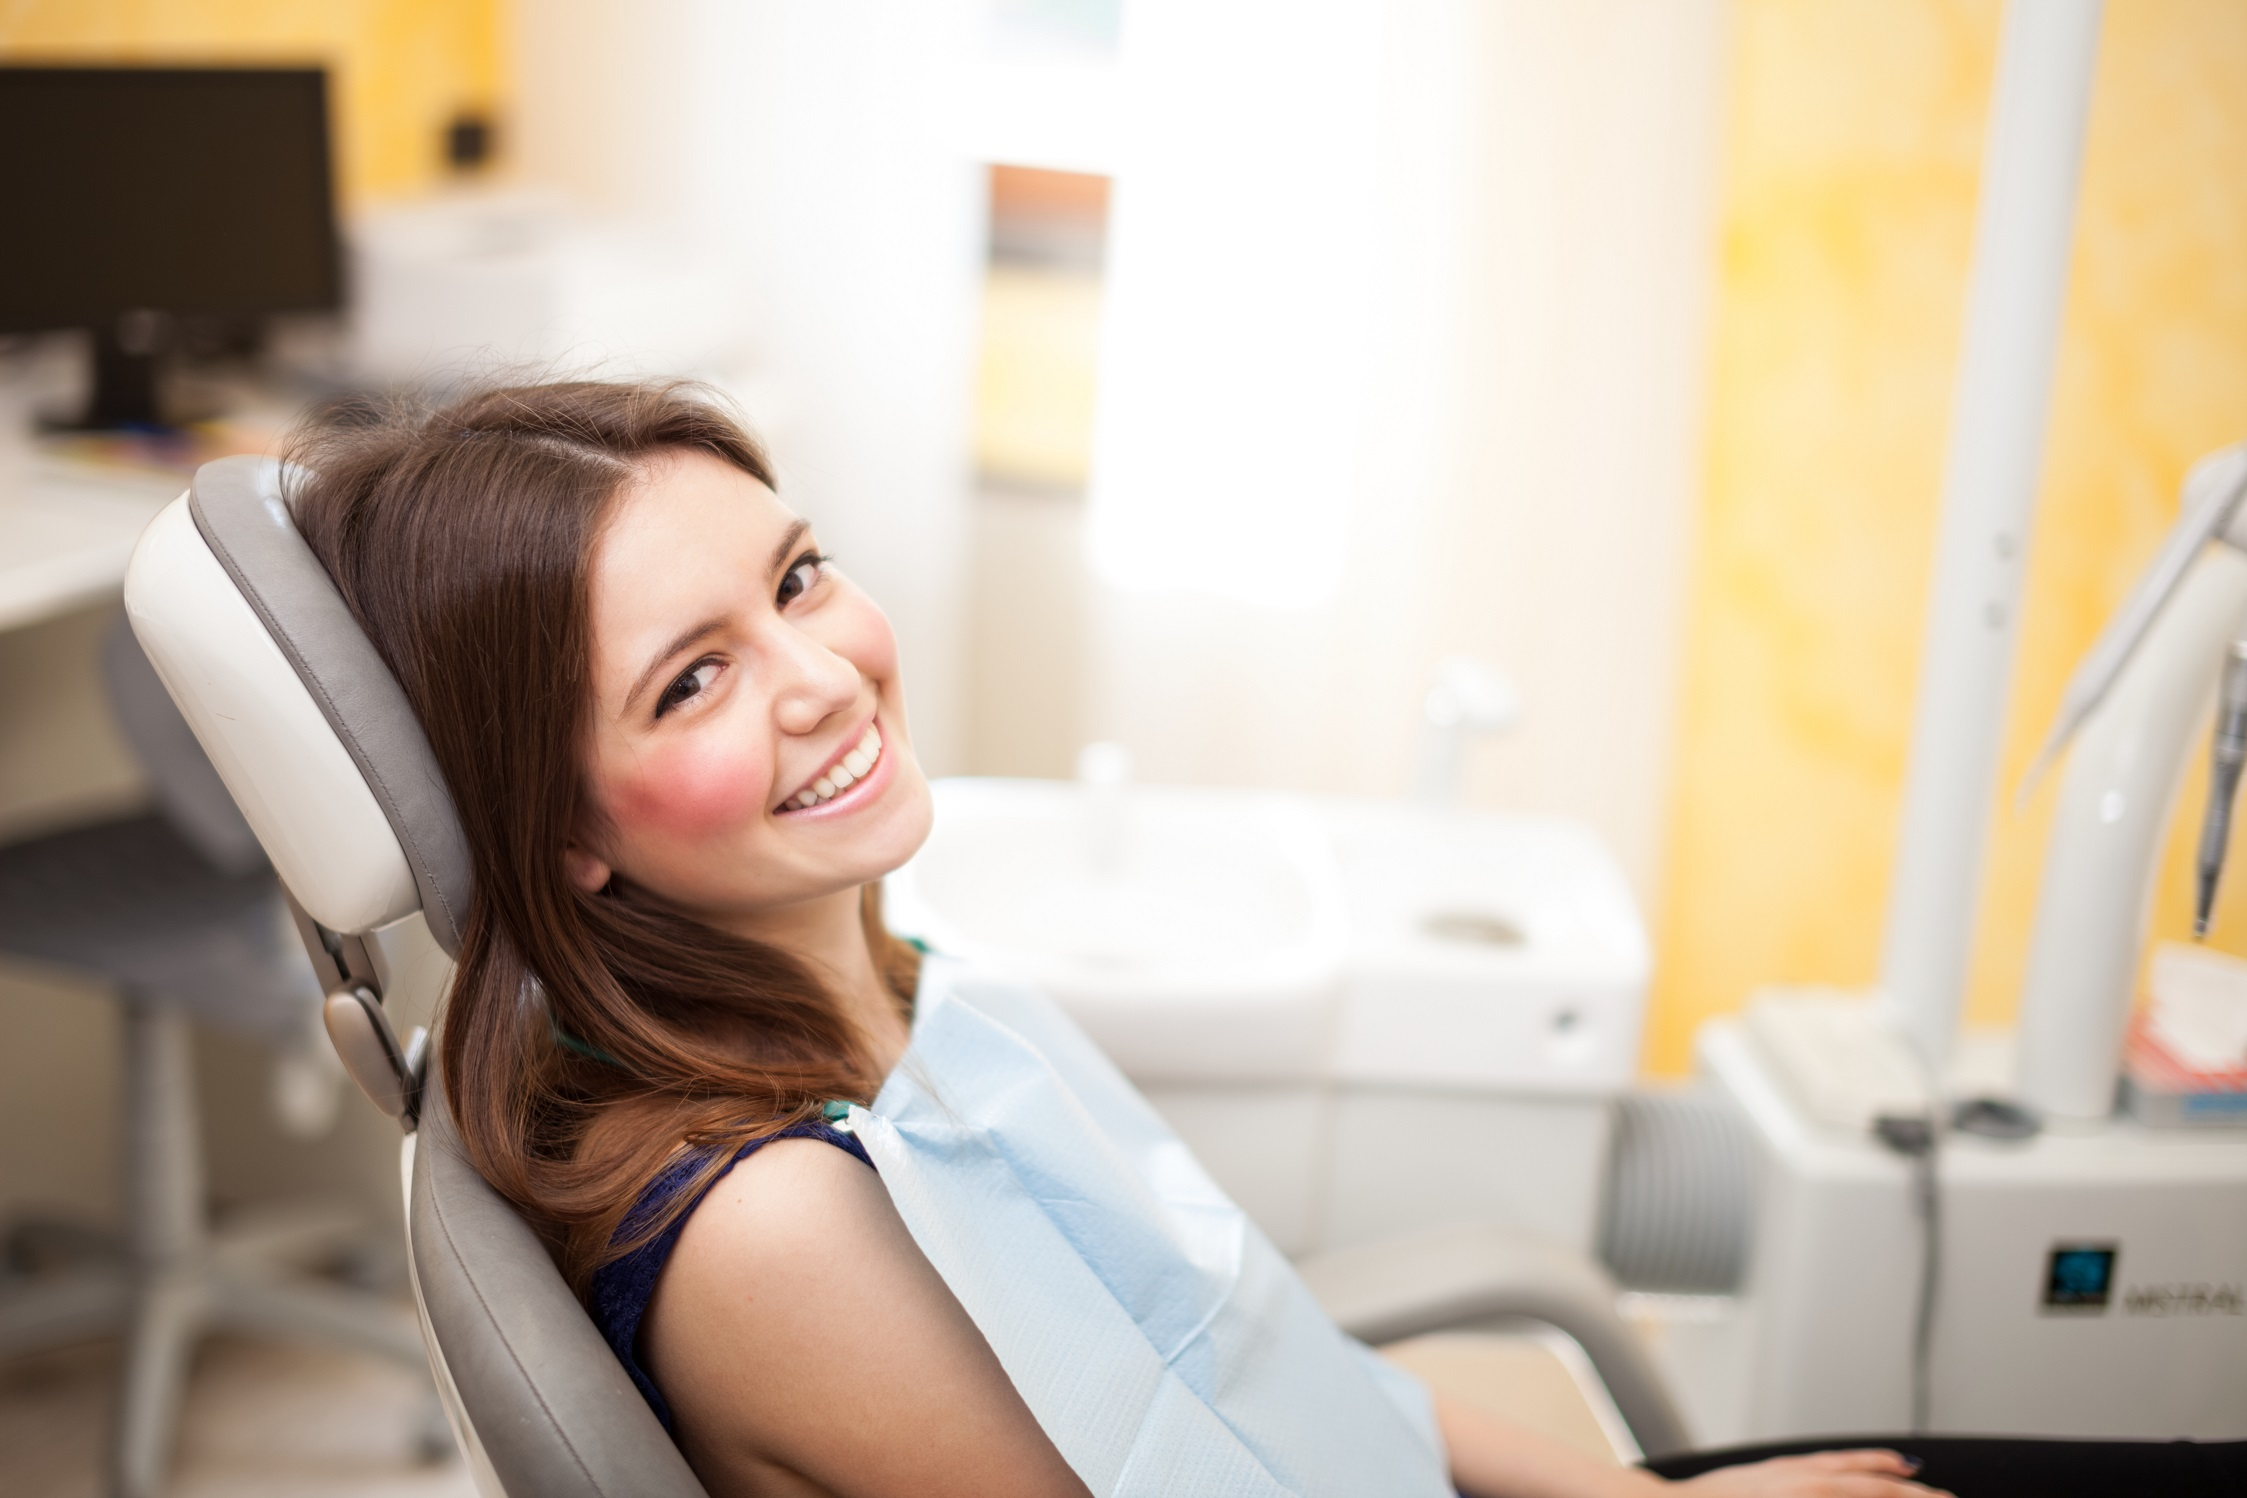 tooth pain relief treatment